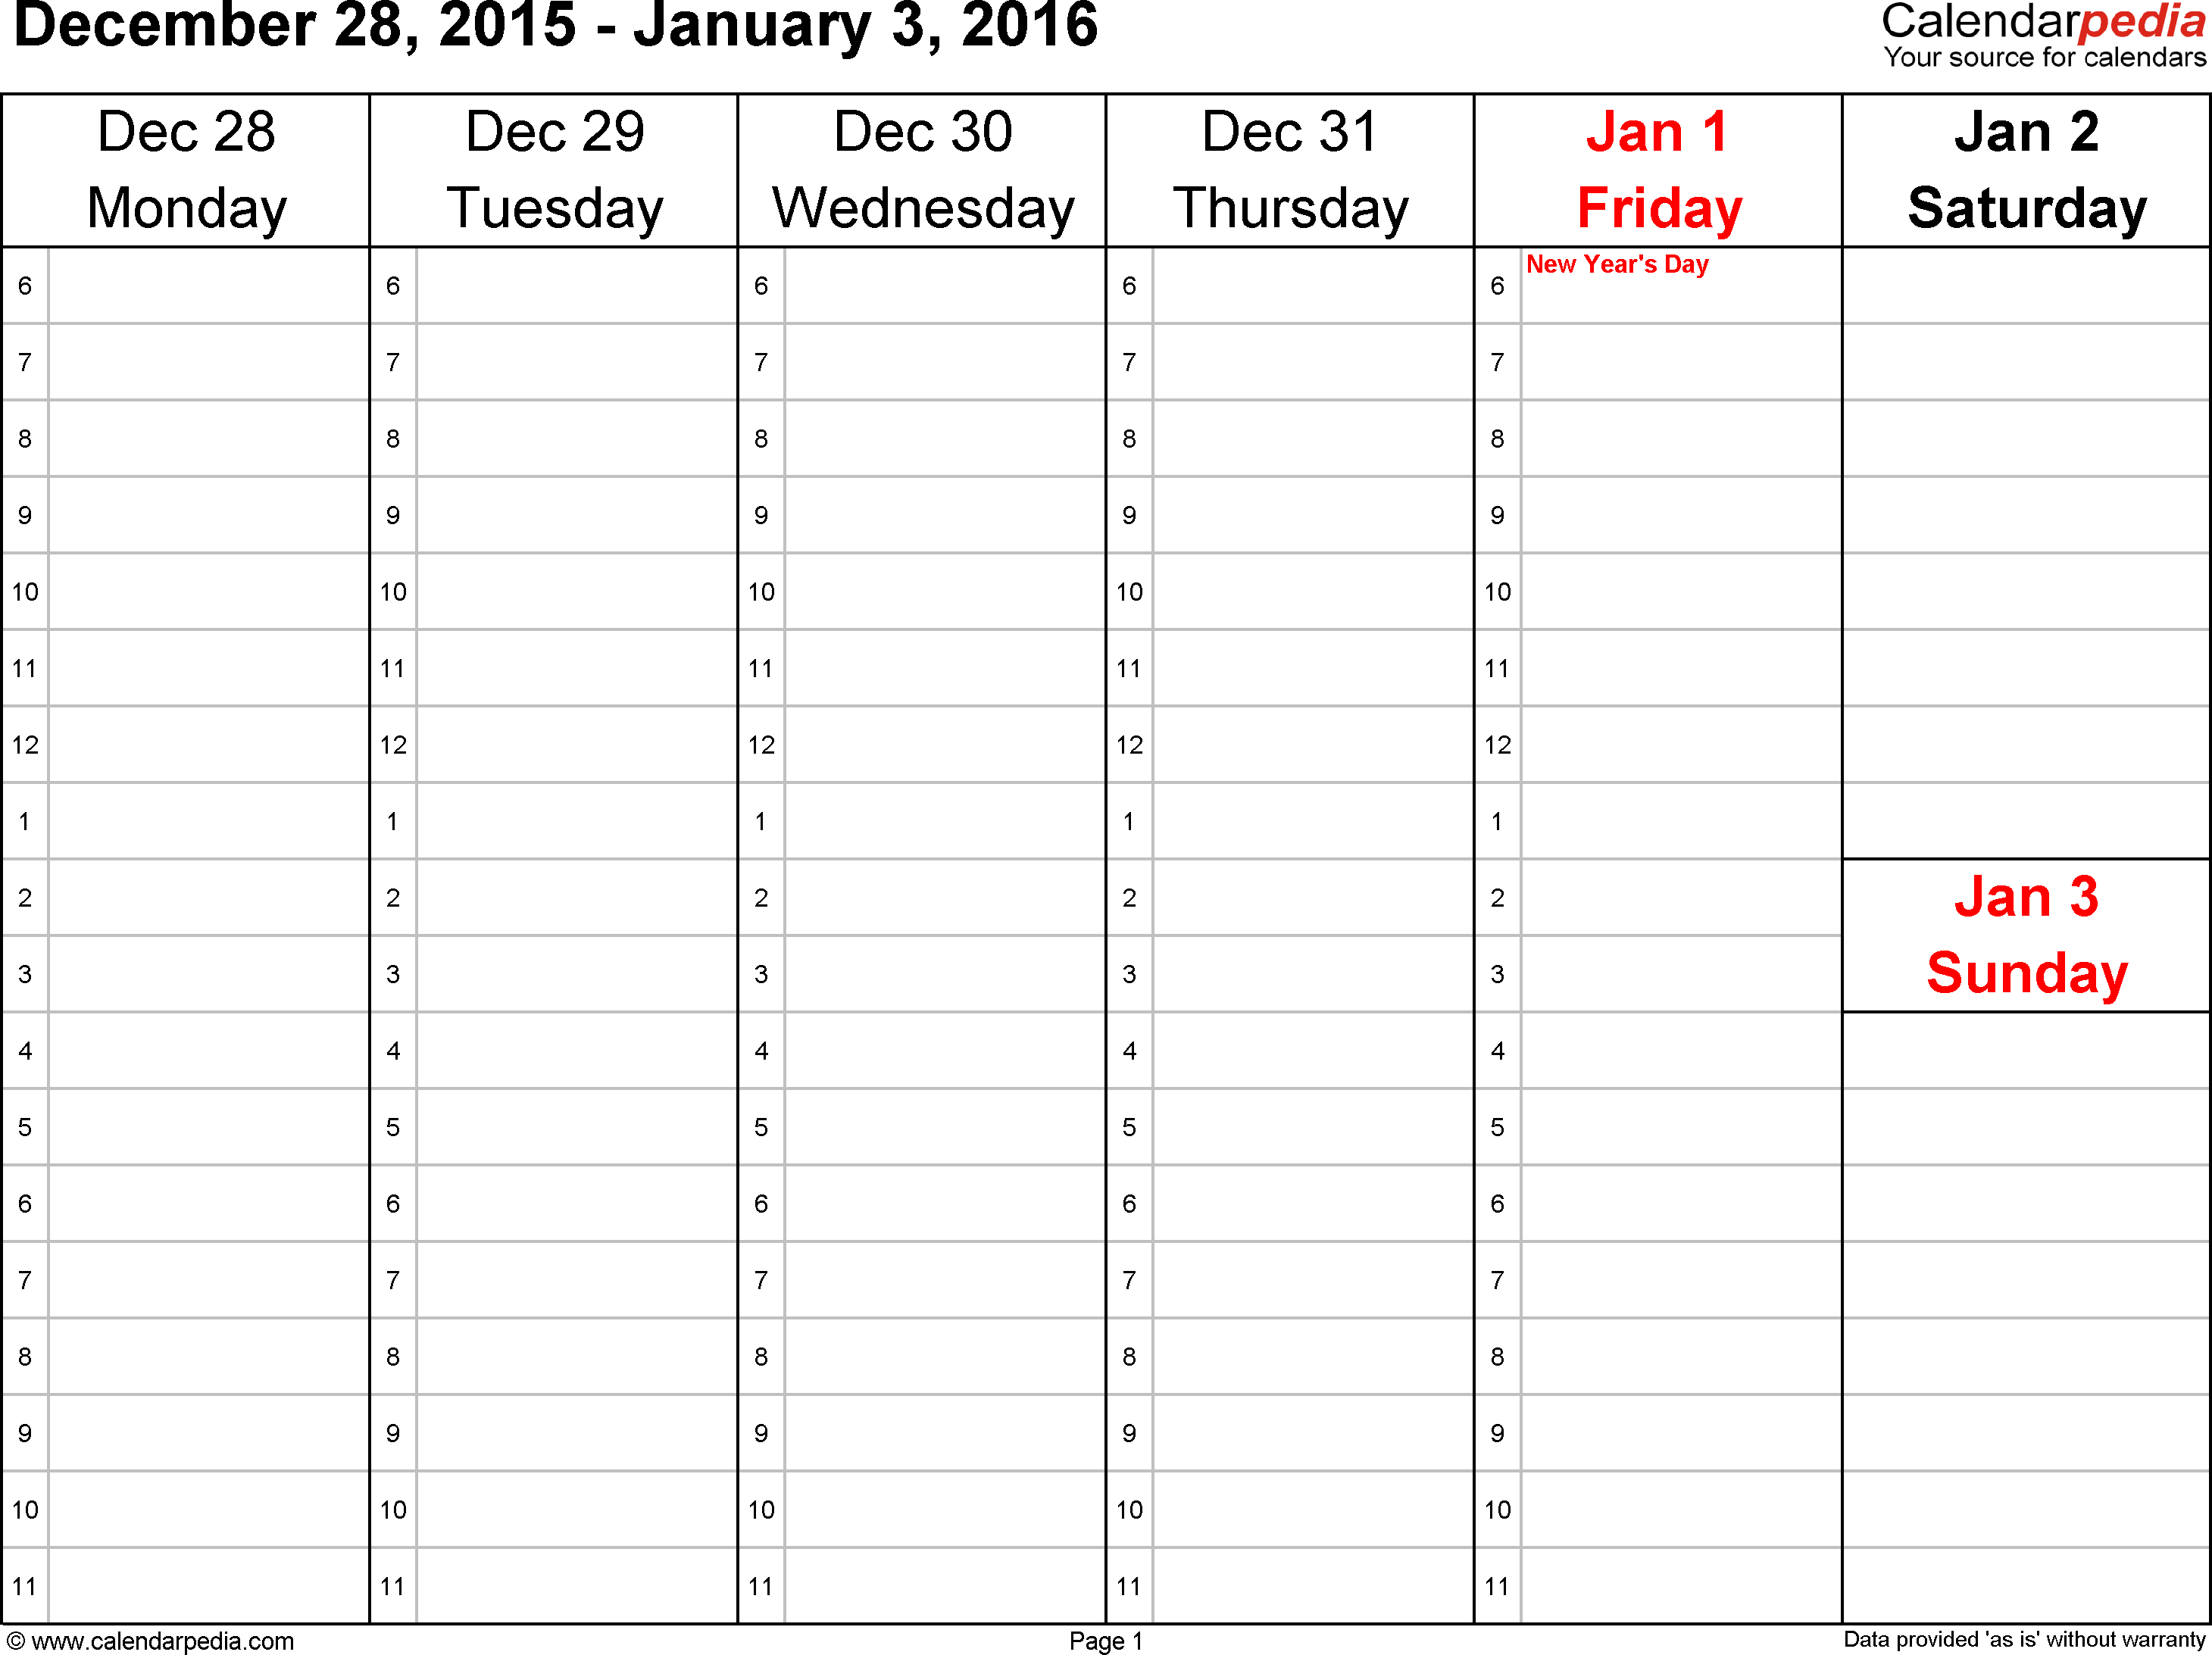 Weekly calendar 2016: template for Excel version 4, landscape, 53 pages, Saturday & Sunday share one column